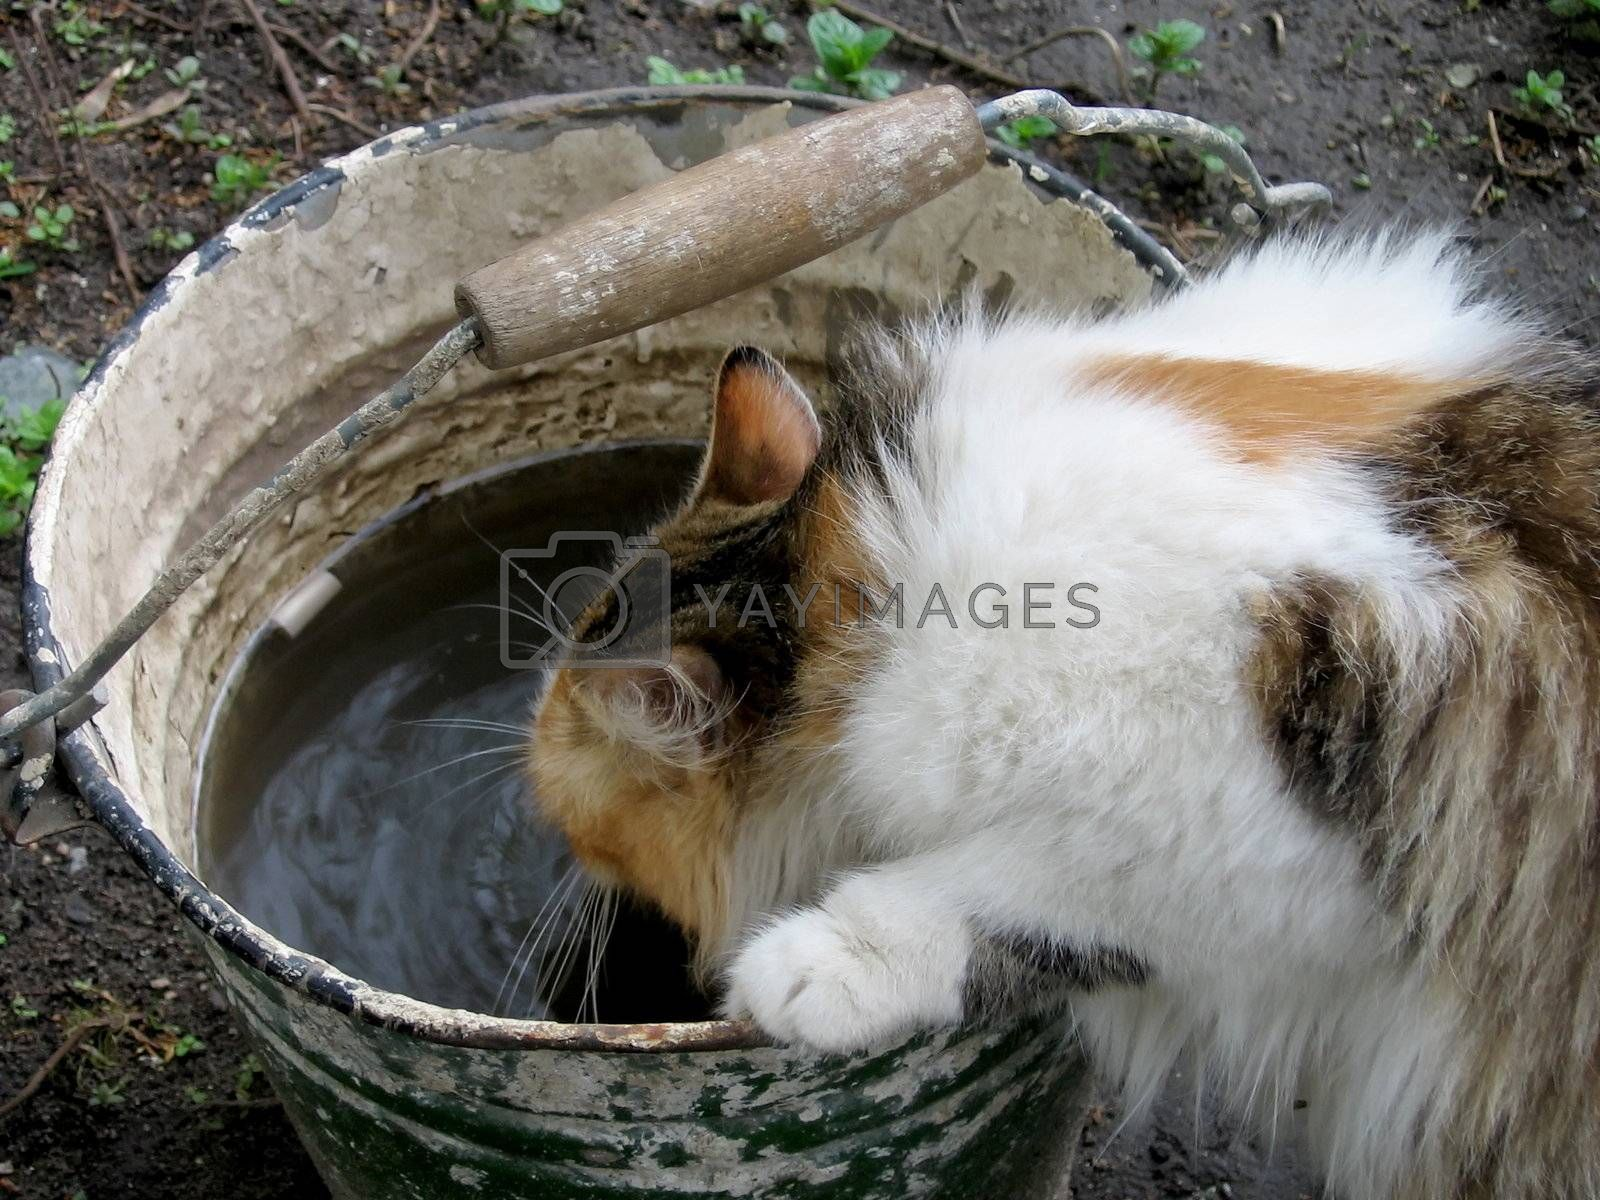 Cute cat drinks water from the bucket